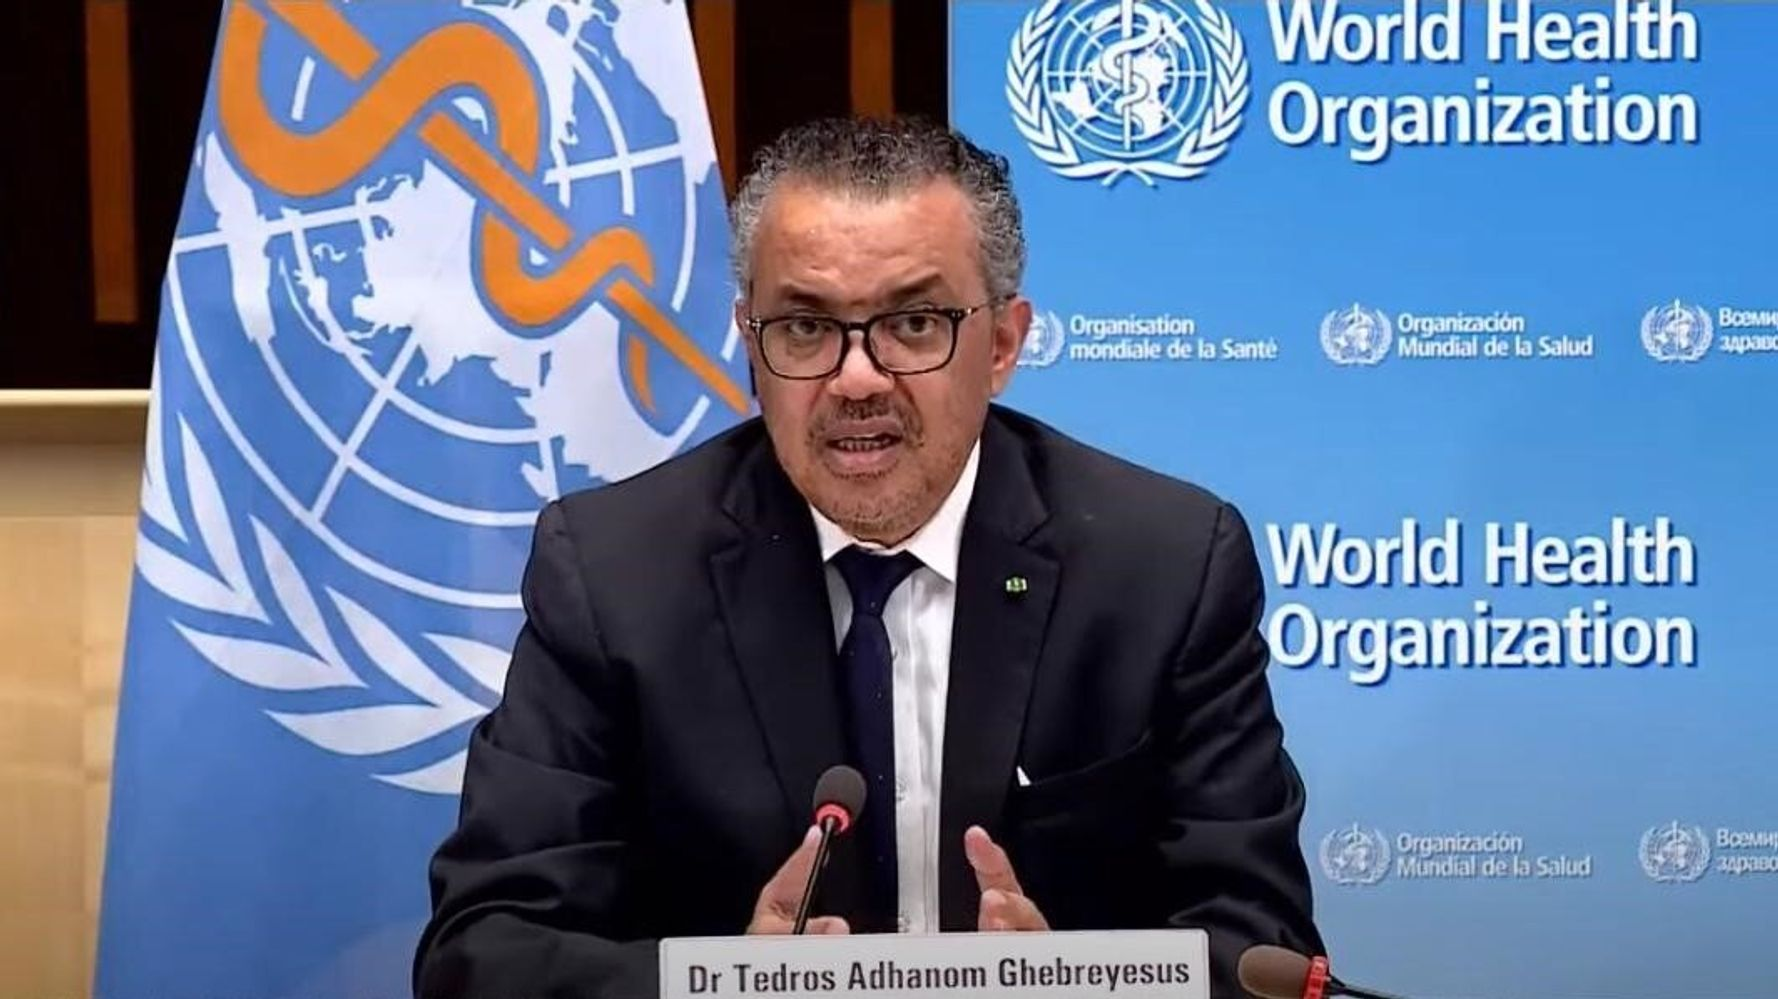 WHO Chief: Rich Nations Vaccinating Kids Is 'Moral Catastrophe' Amid Global Shot Shortage